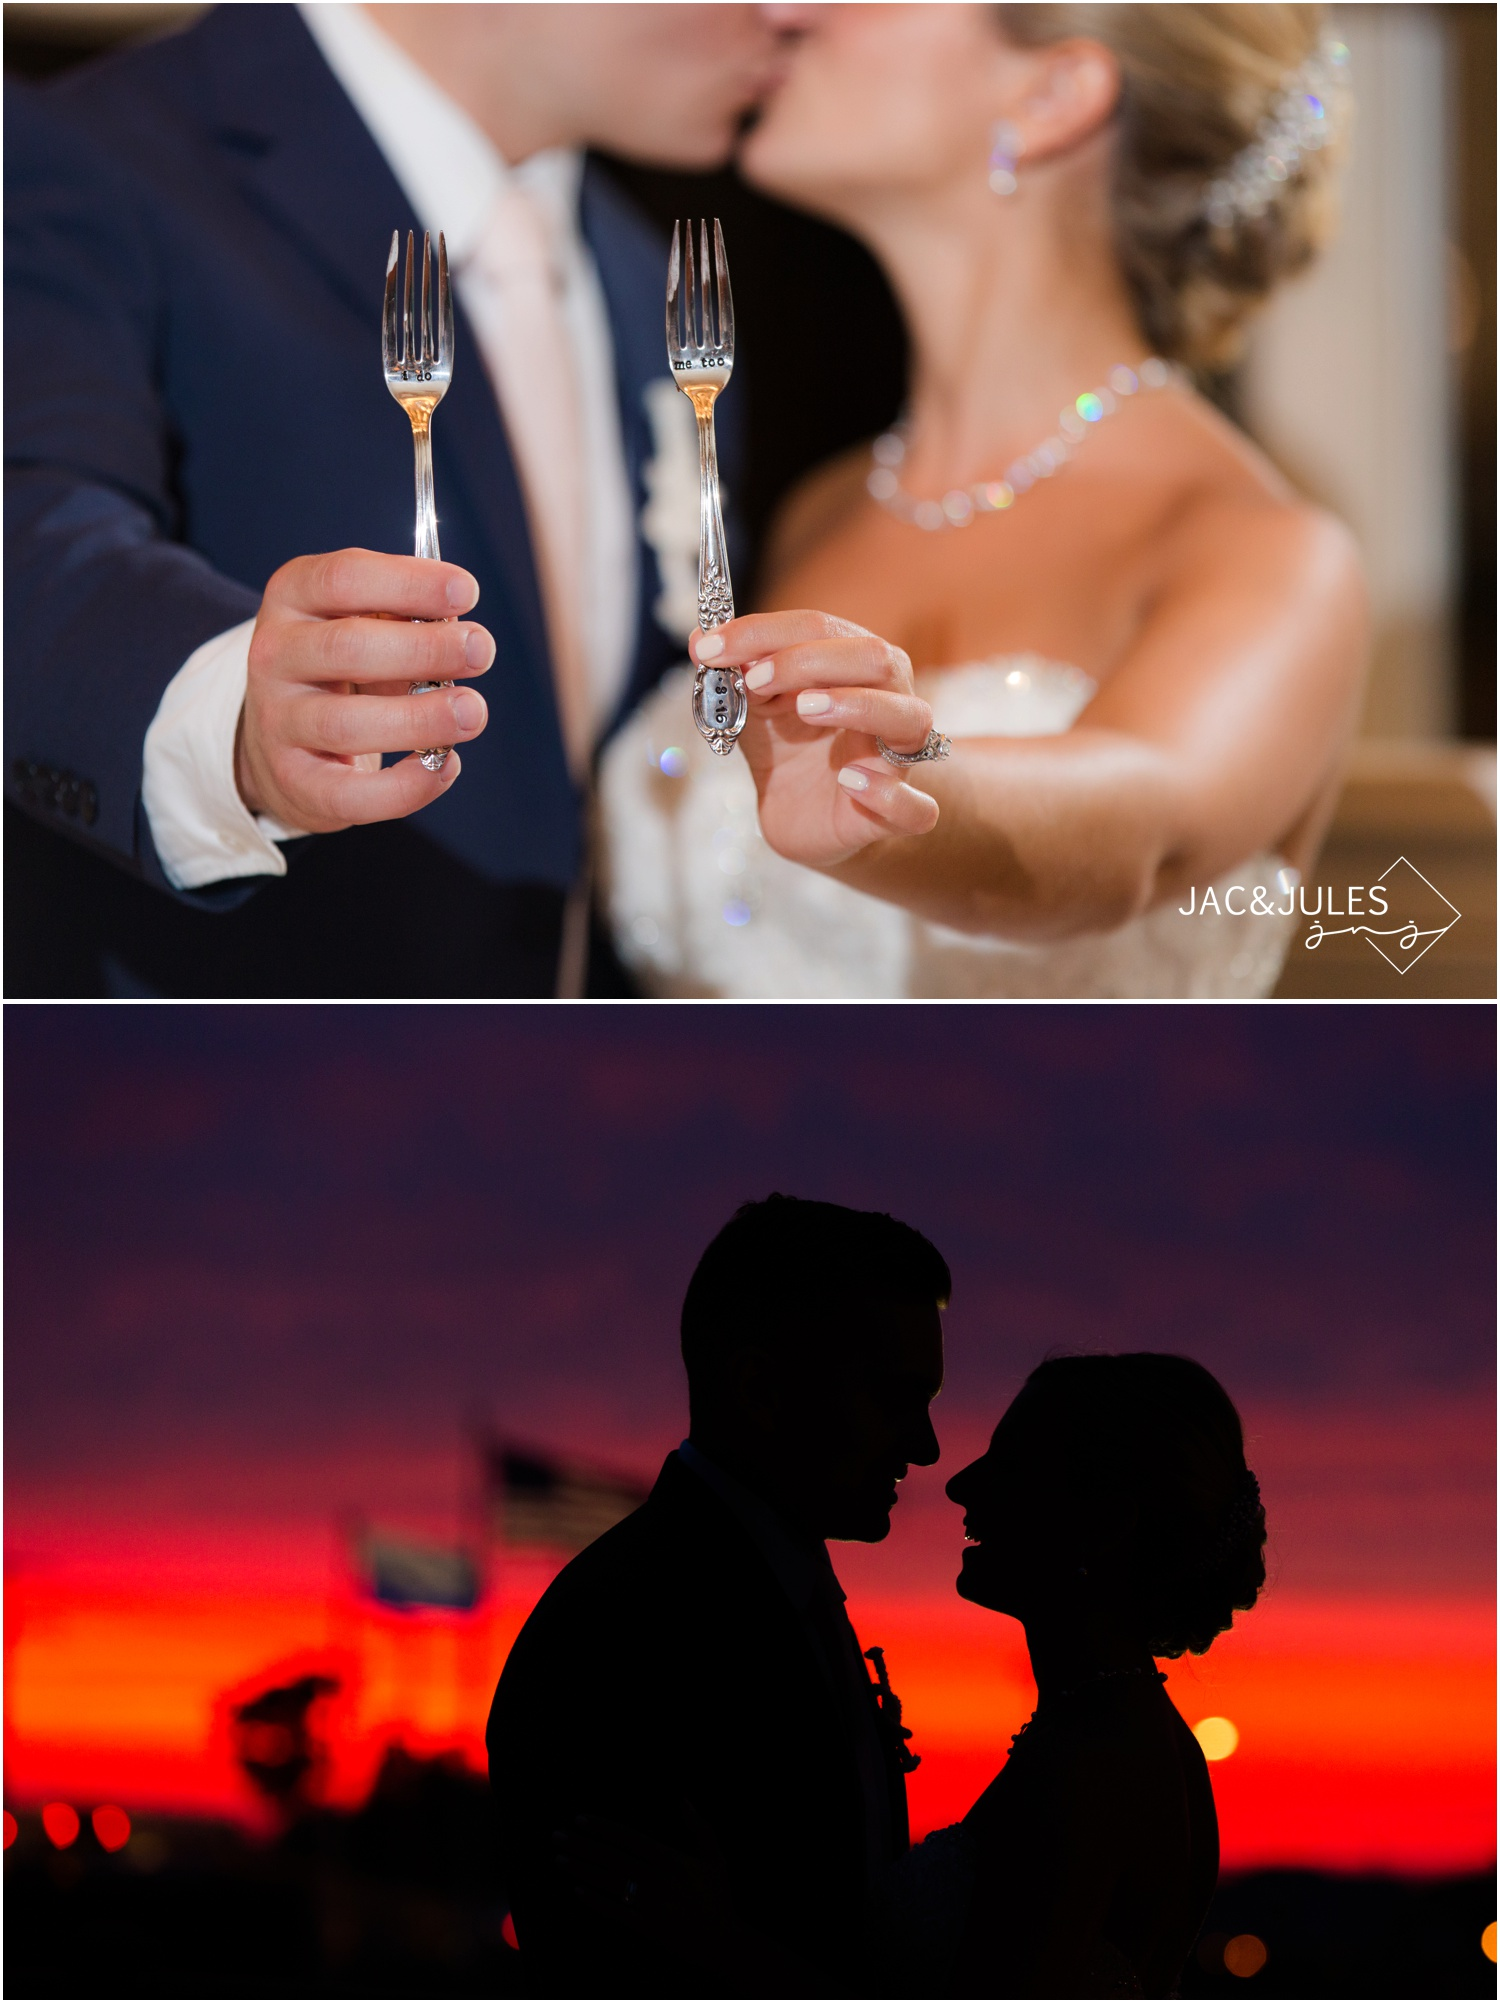 Personalized engraved wedding cake forks and a gorgeous sunset at The Stateroom in LBI, NJ